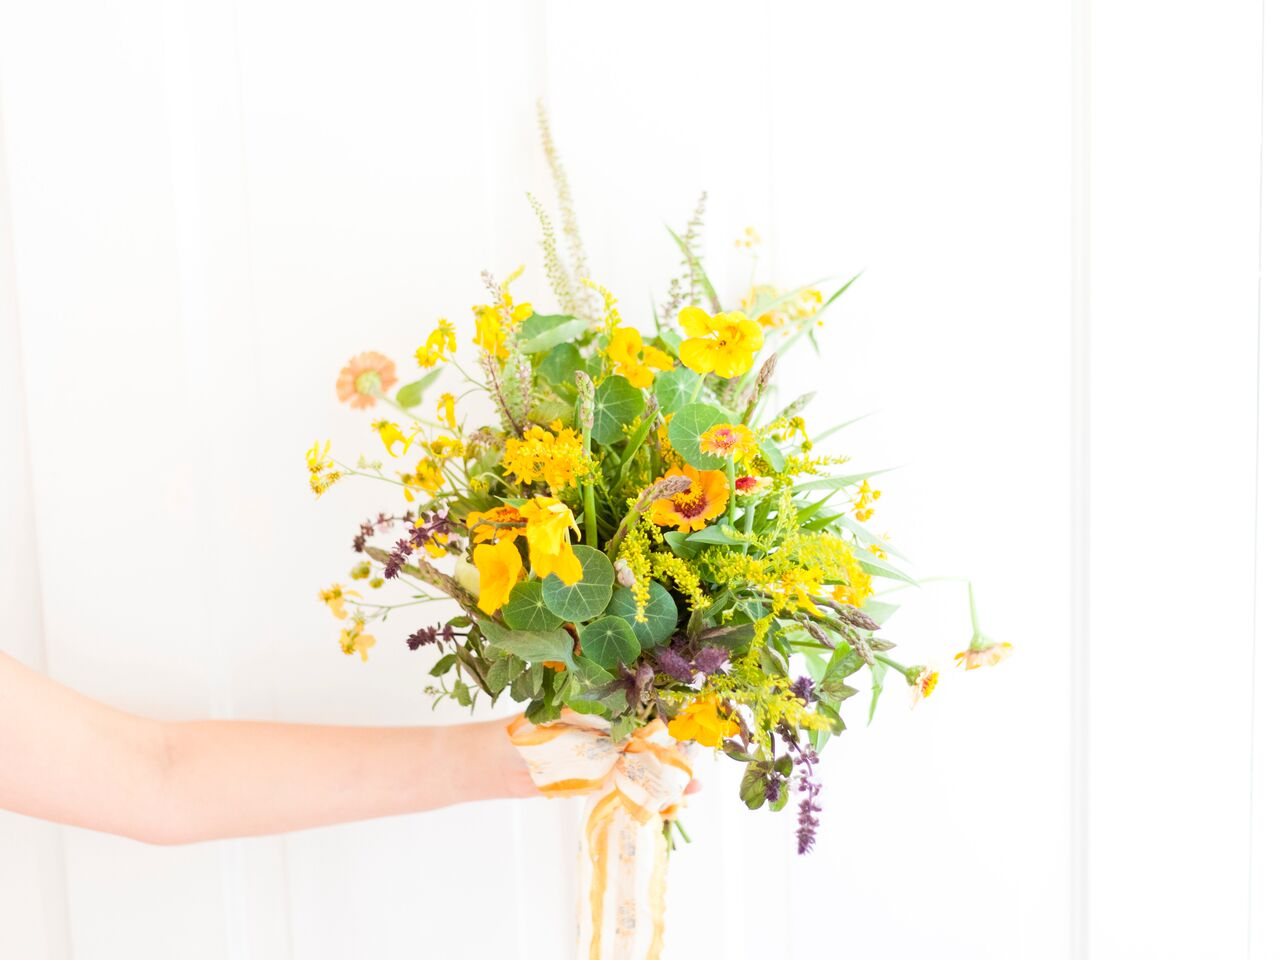 Food Network Feature: Food in Flowers